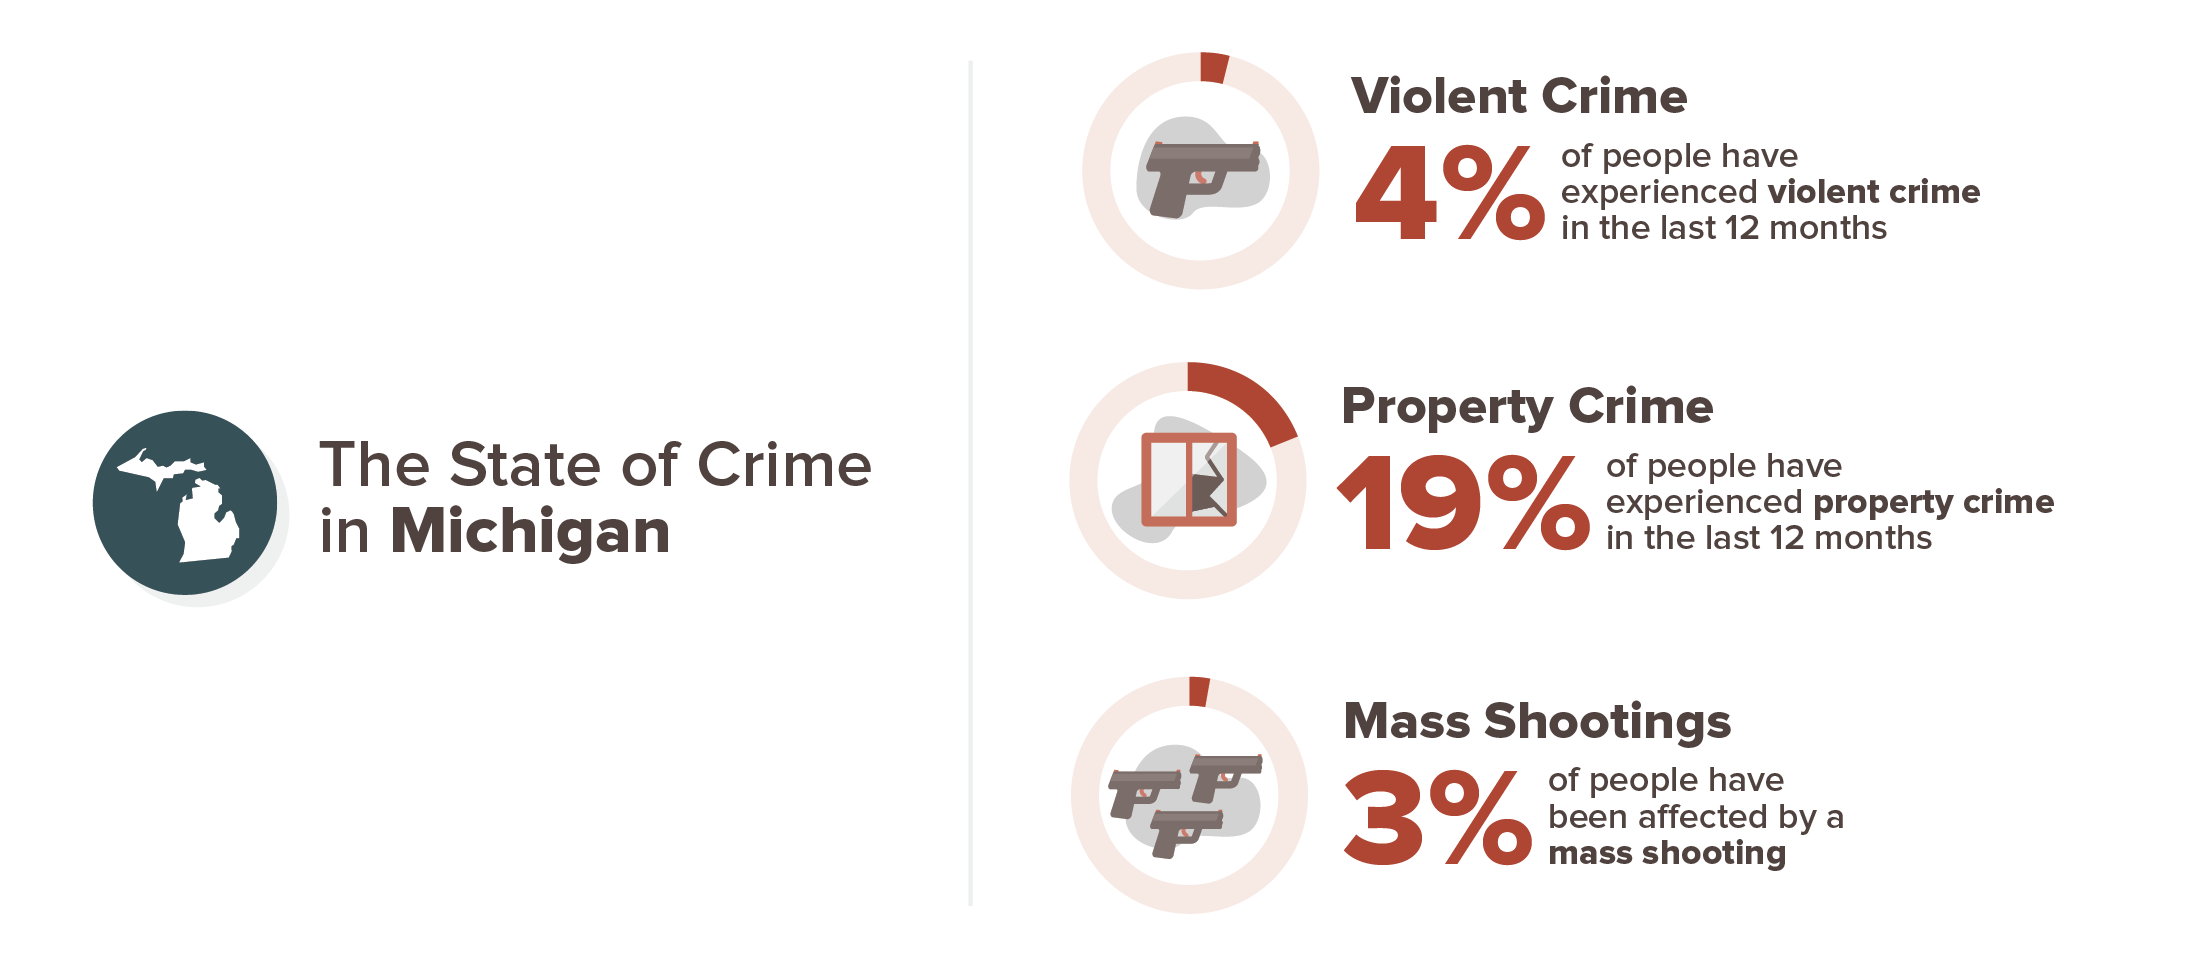 Michigan crime experience infographic; 4% violent crime, 19% property crime, 3% mass shooting